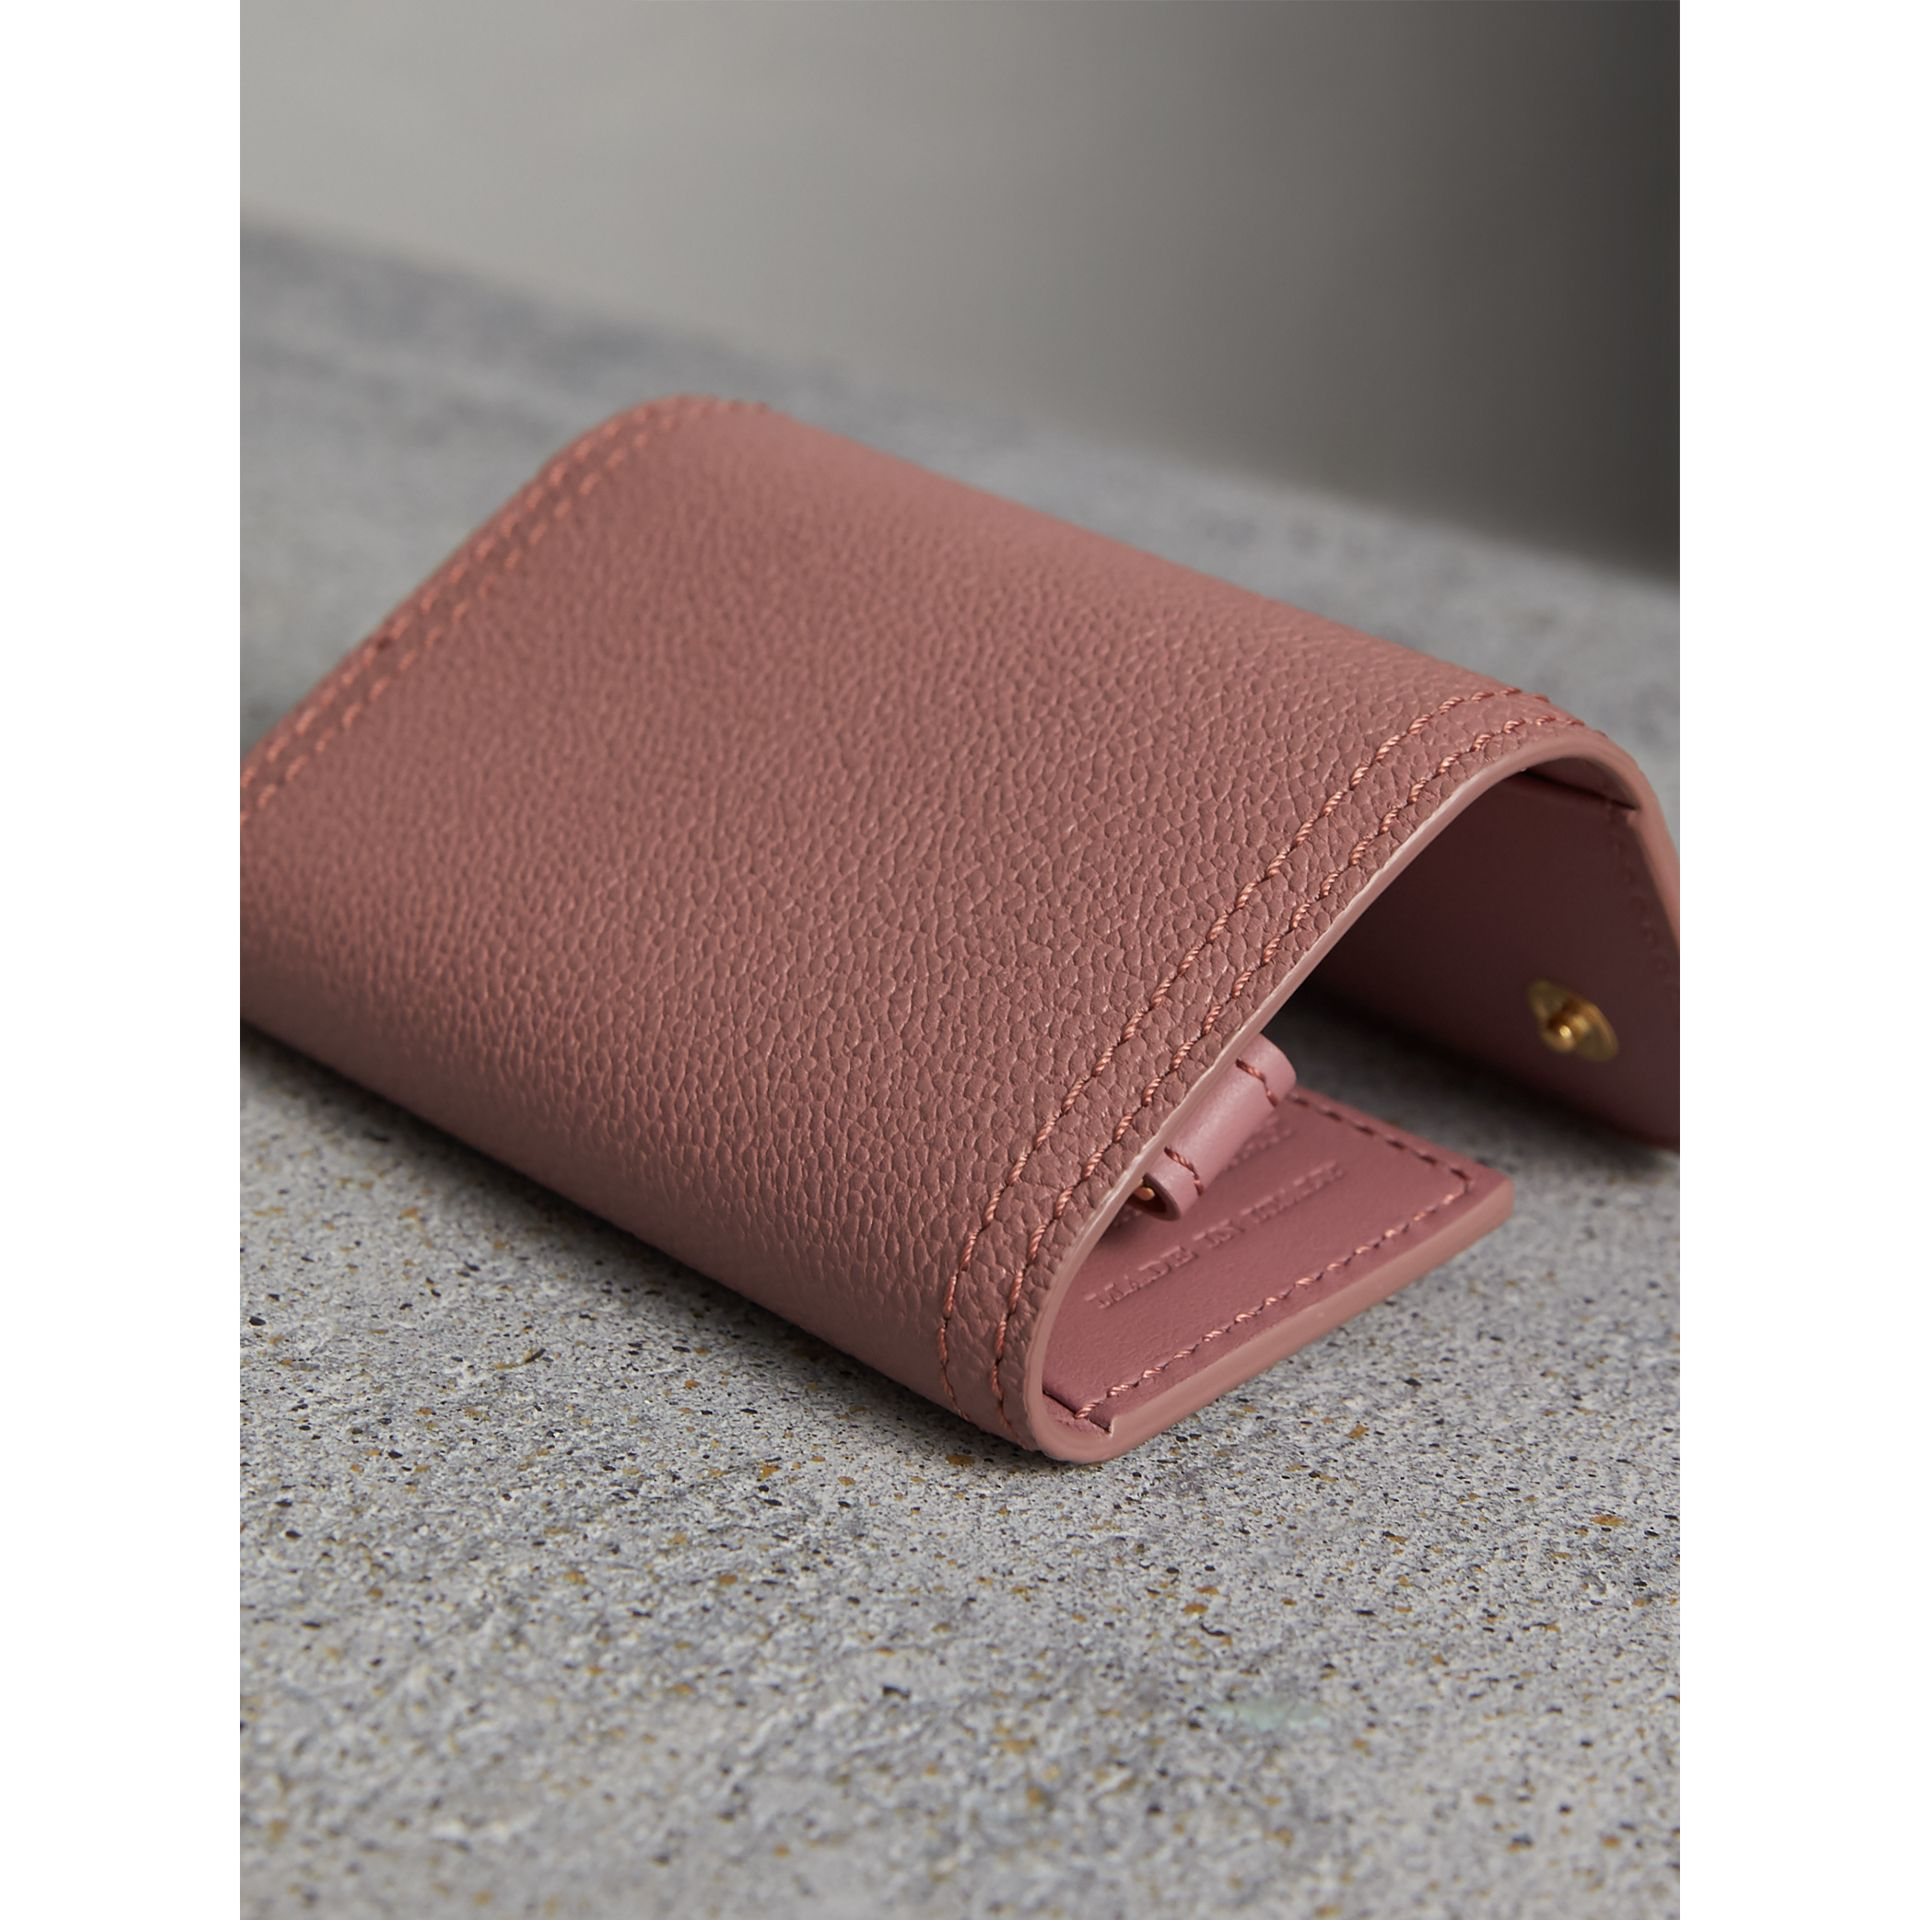 Grainy Leather Key Holder in Dusty Pink - Women | Burberry - gallery image 3